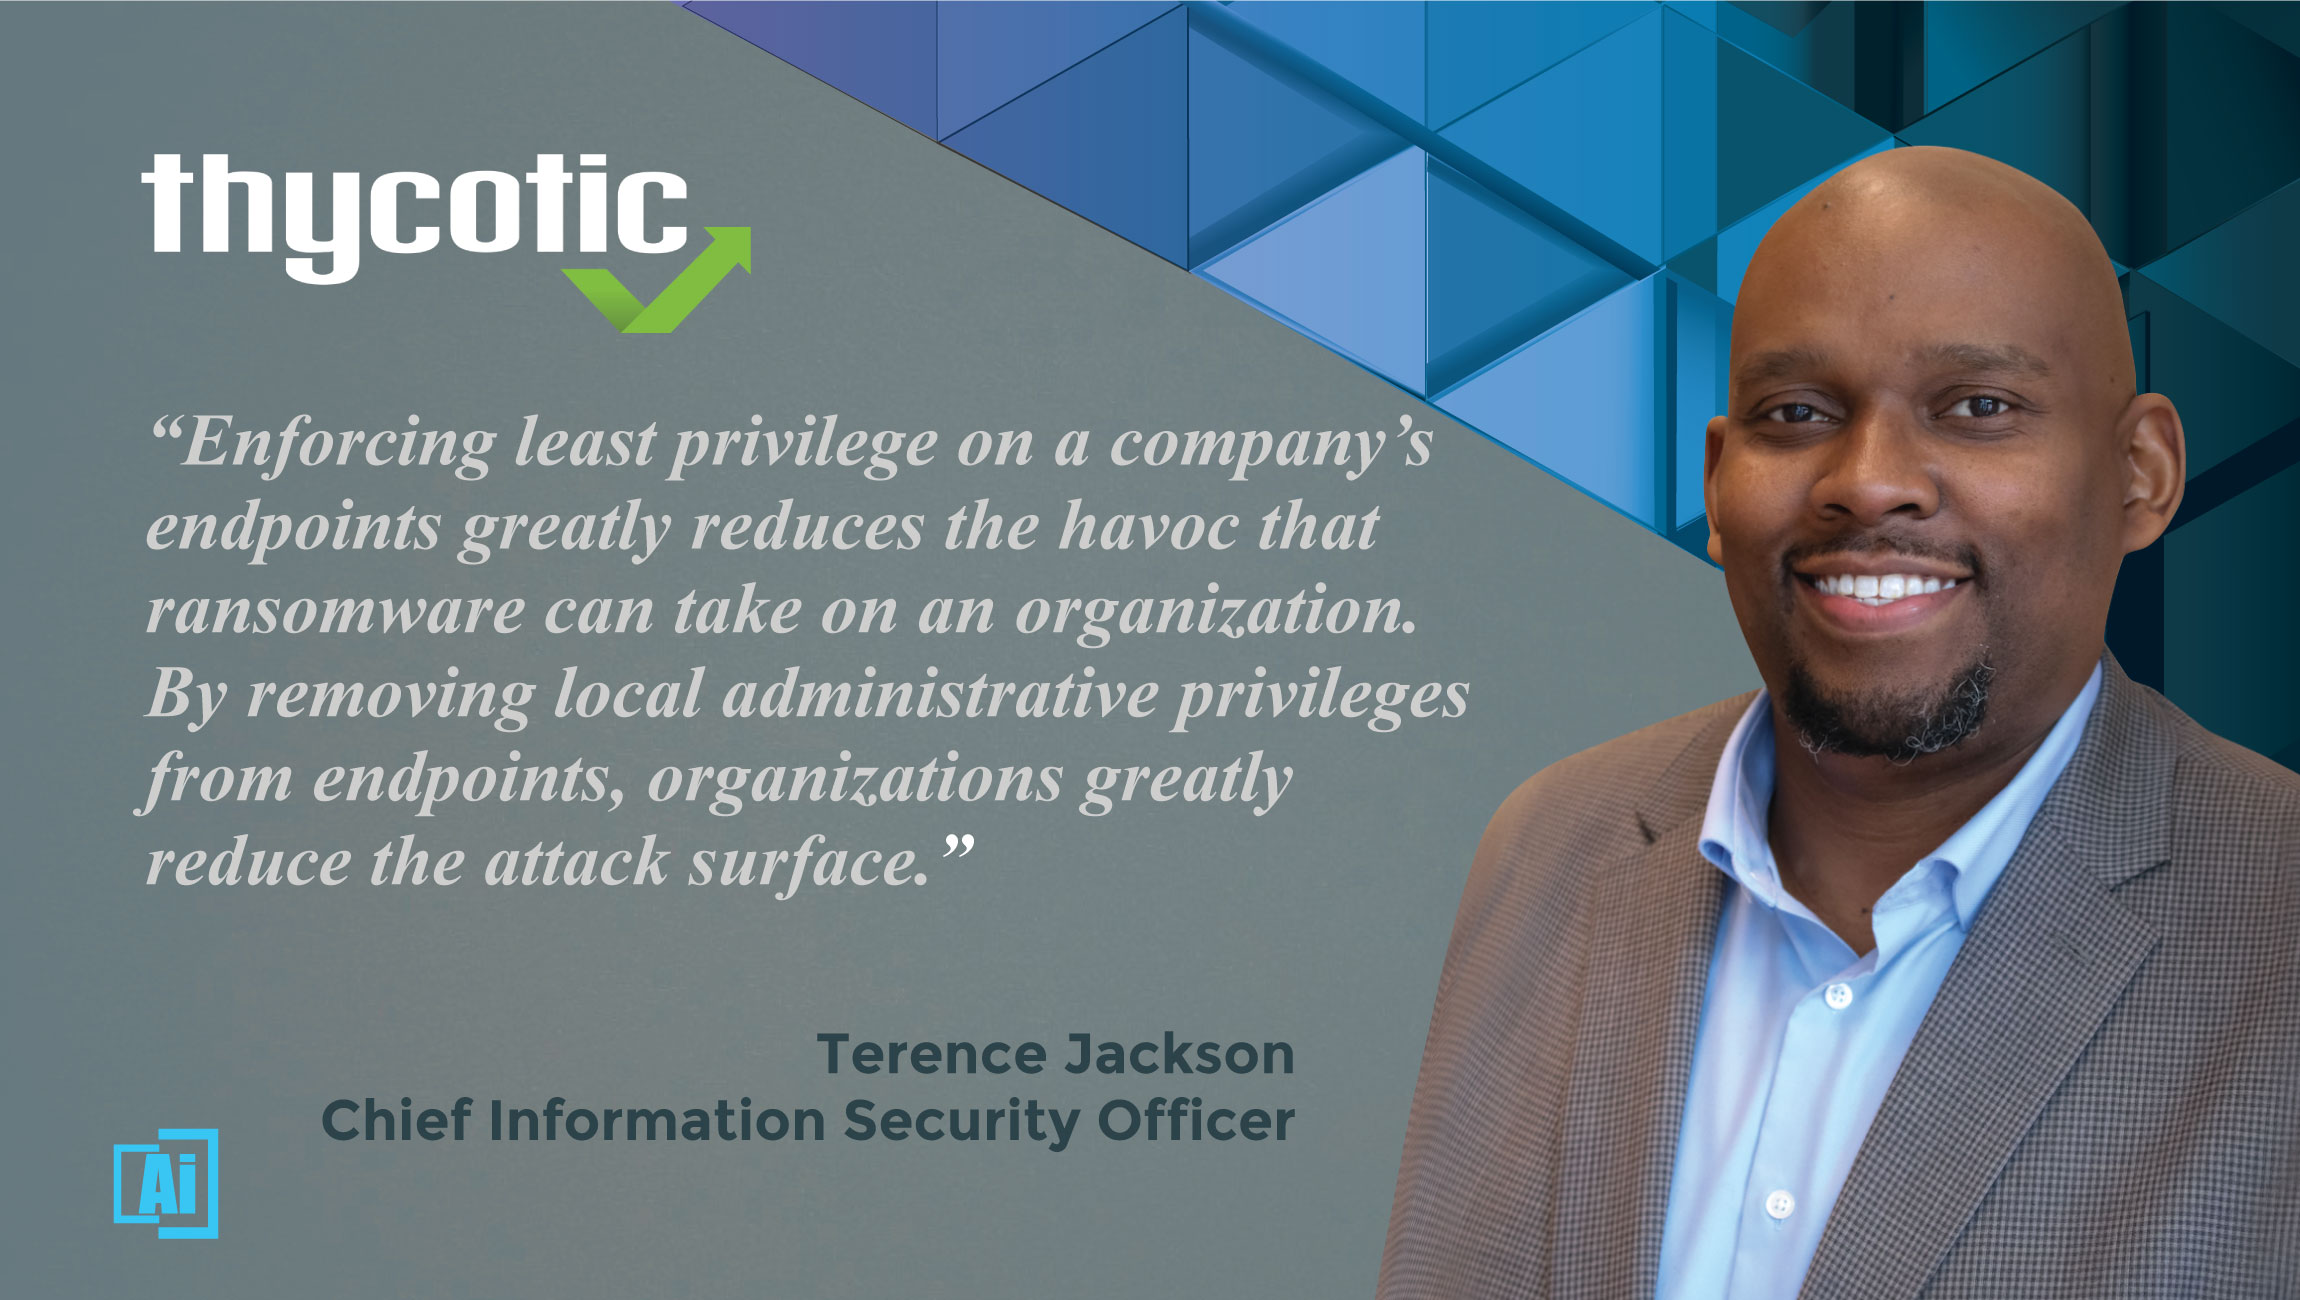 AiThority Interview With Terence Jackson, Chief Information Security Officer at Thycotic